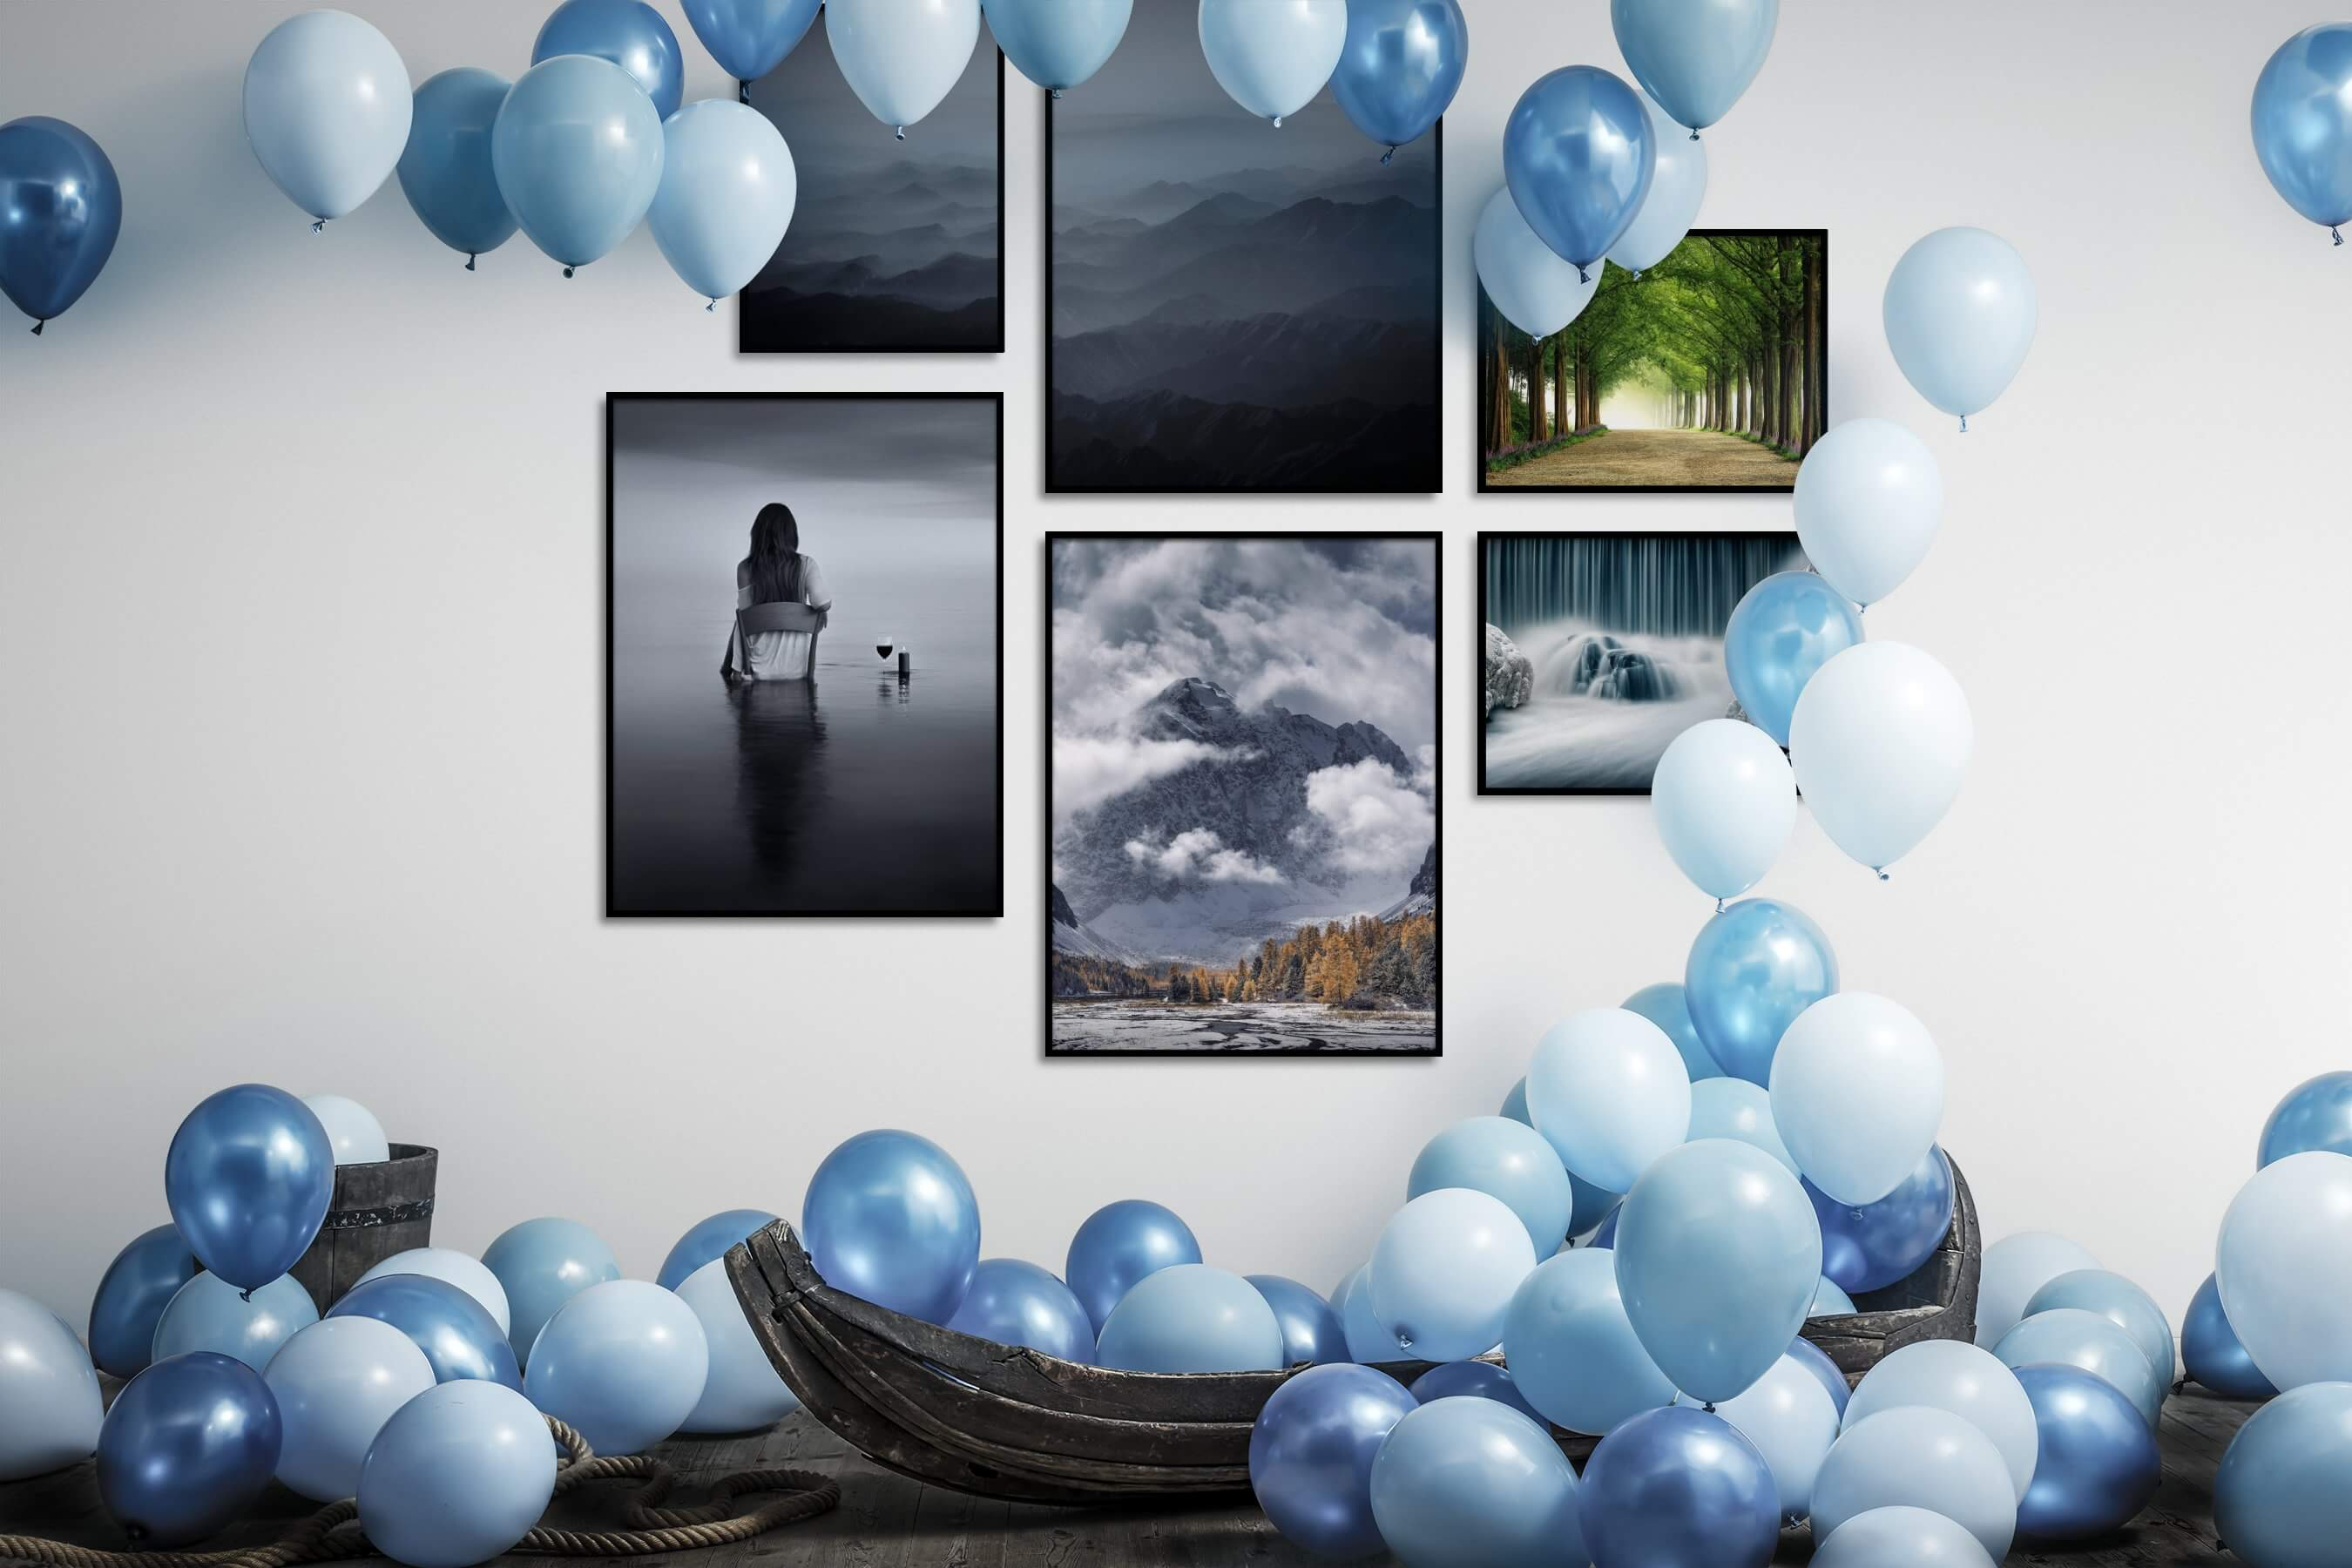 Gallery wall idea with six framed pictures arranged on a wall depicting Nature, Mindfulness, For the Moderate, Black & White, For the Minimalist, Beach & Water, and Country Life